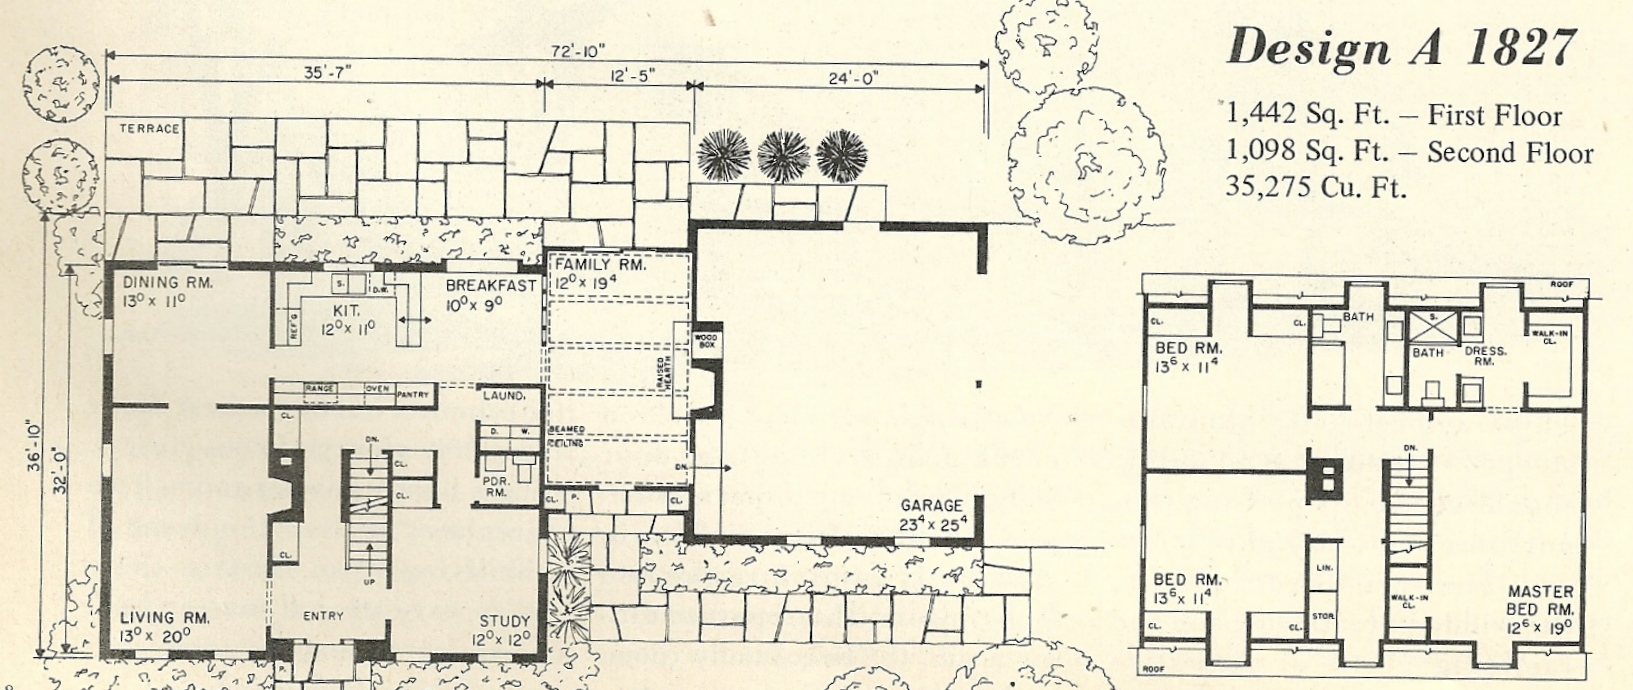 Vintage House Plans 1827a – Gambrel House Floor Plans